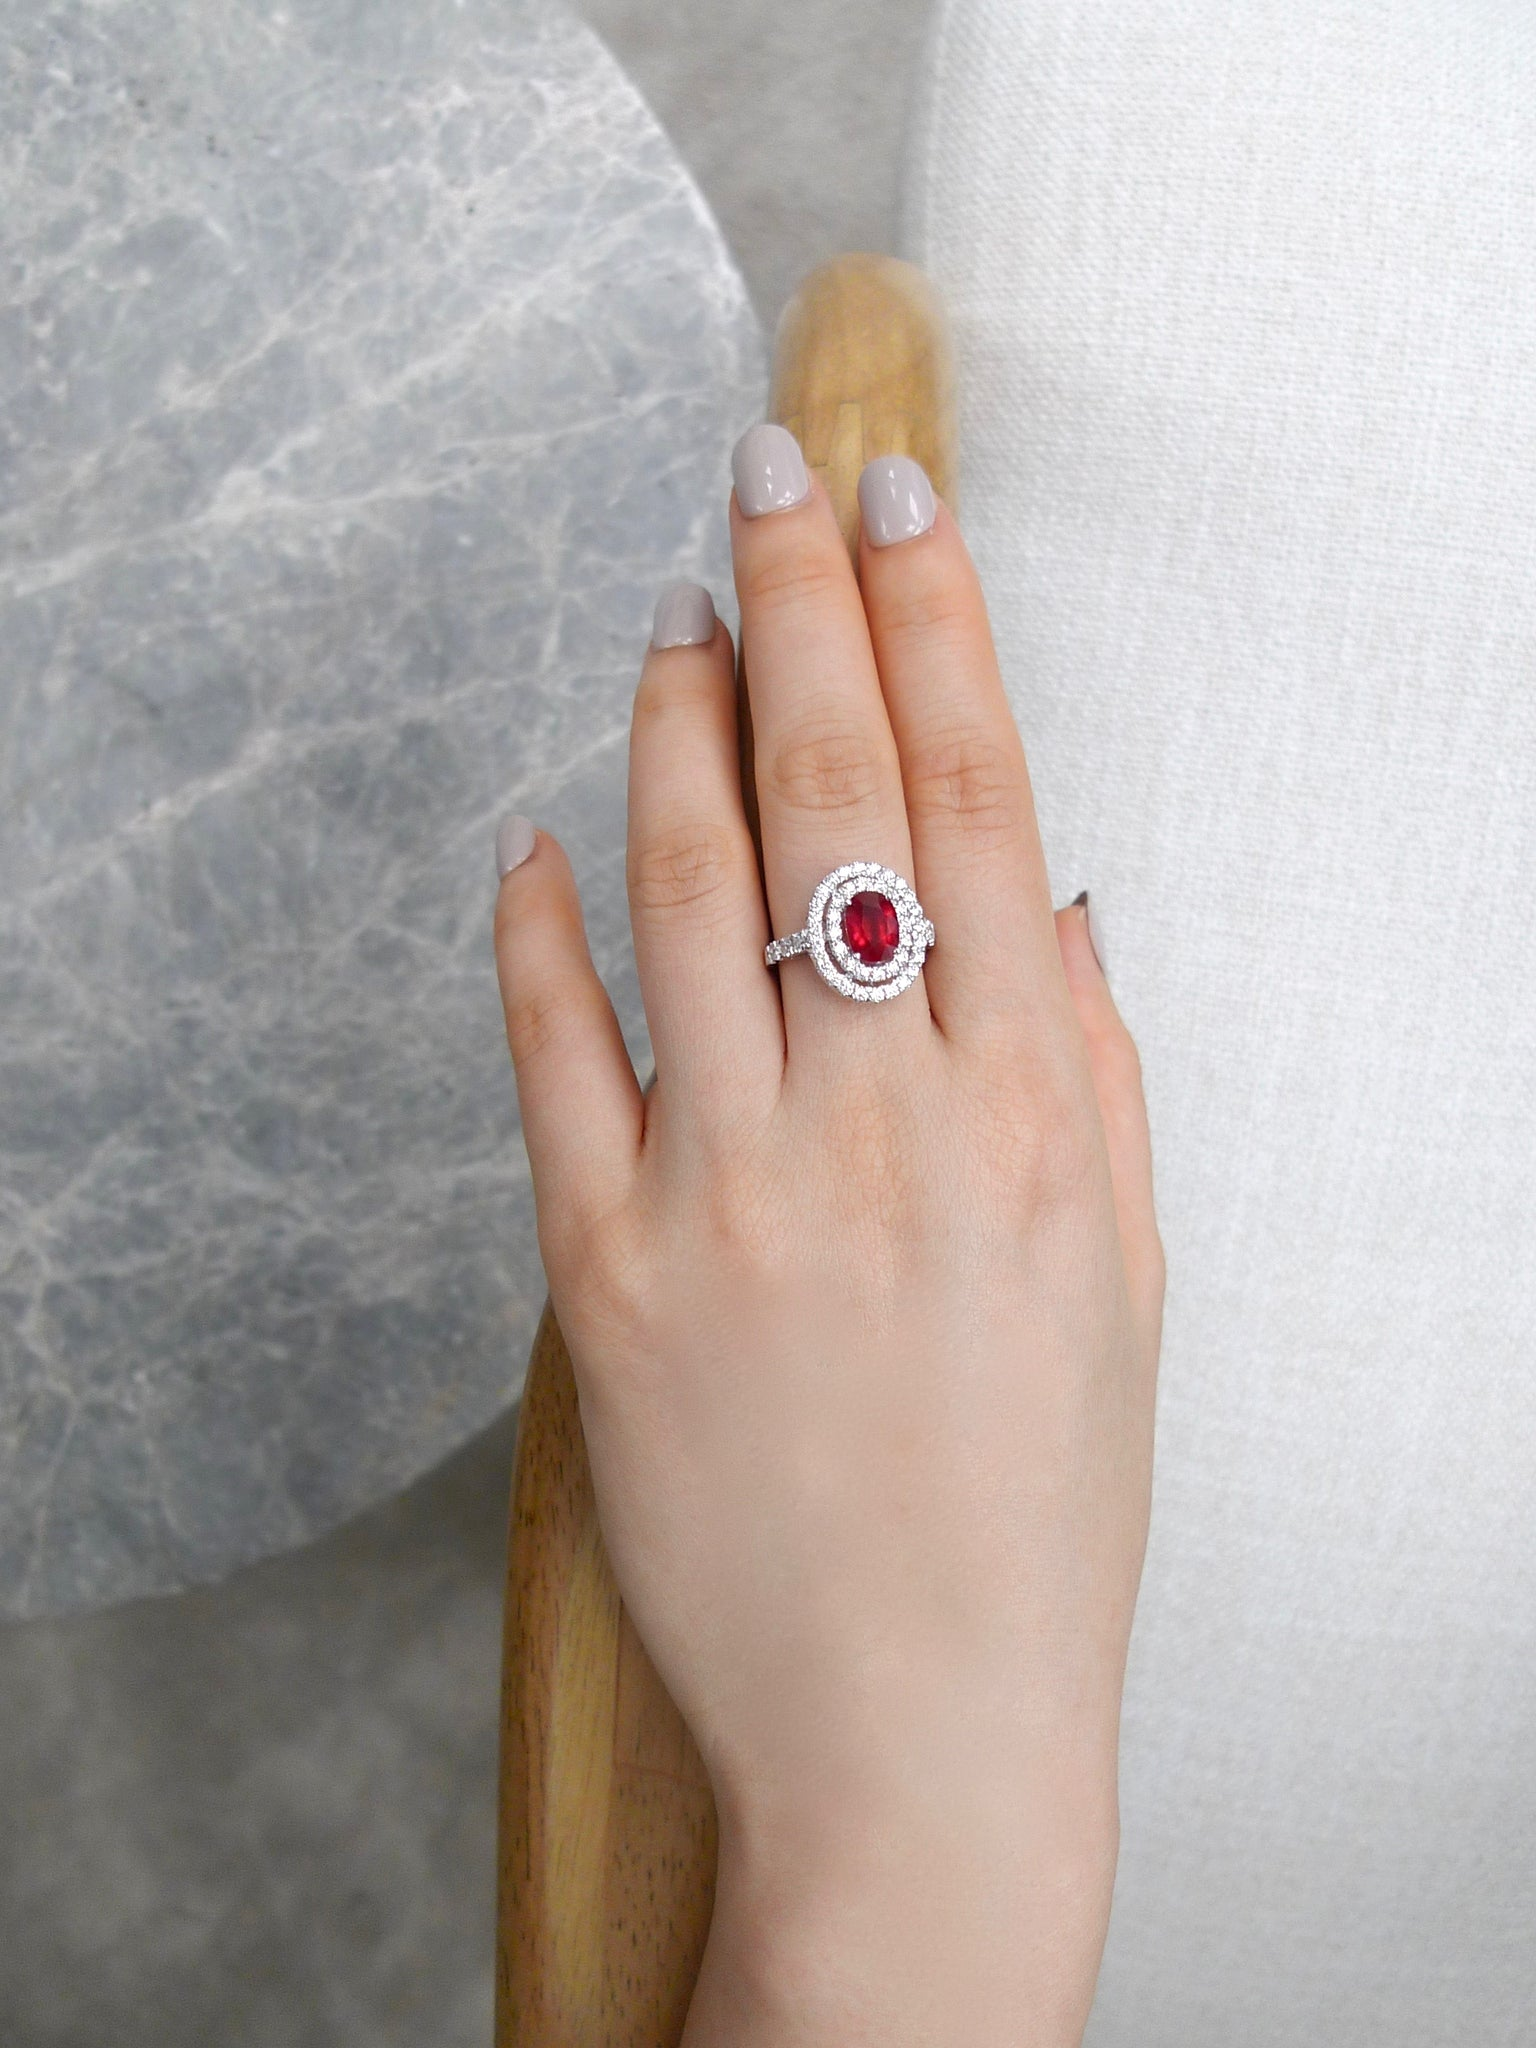 double_halo_diamond_burma_oval_cut_ruby_ring_white_gold_on_model_hand